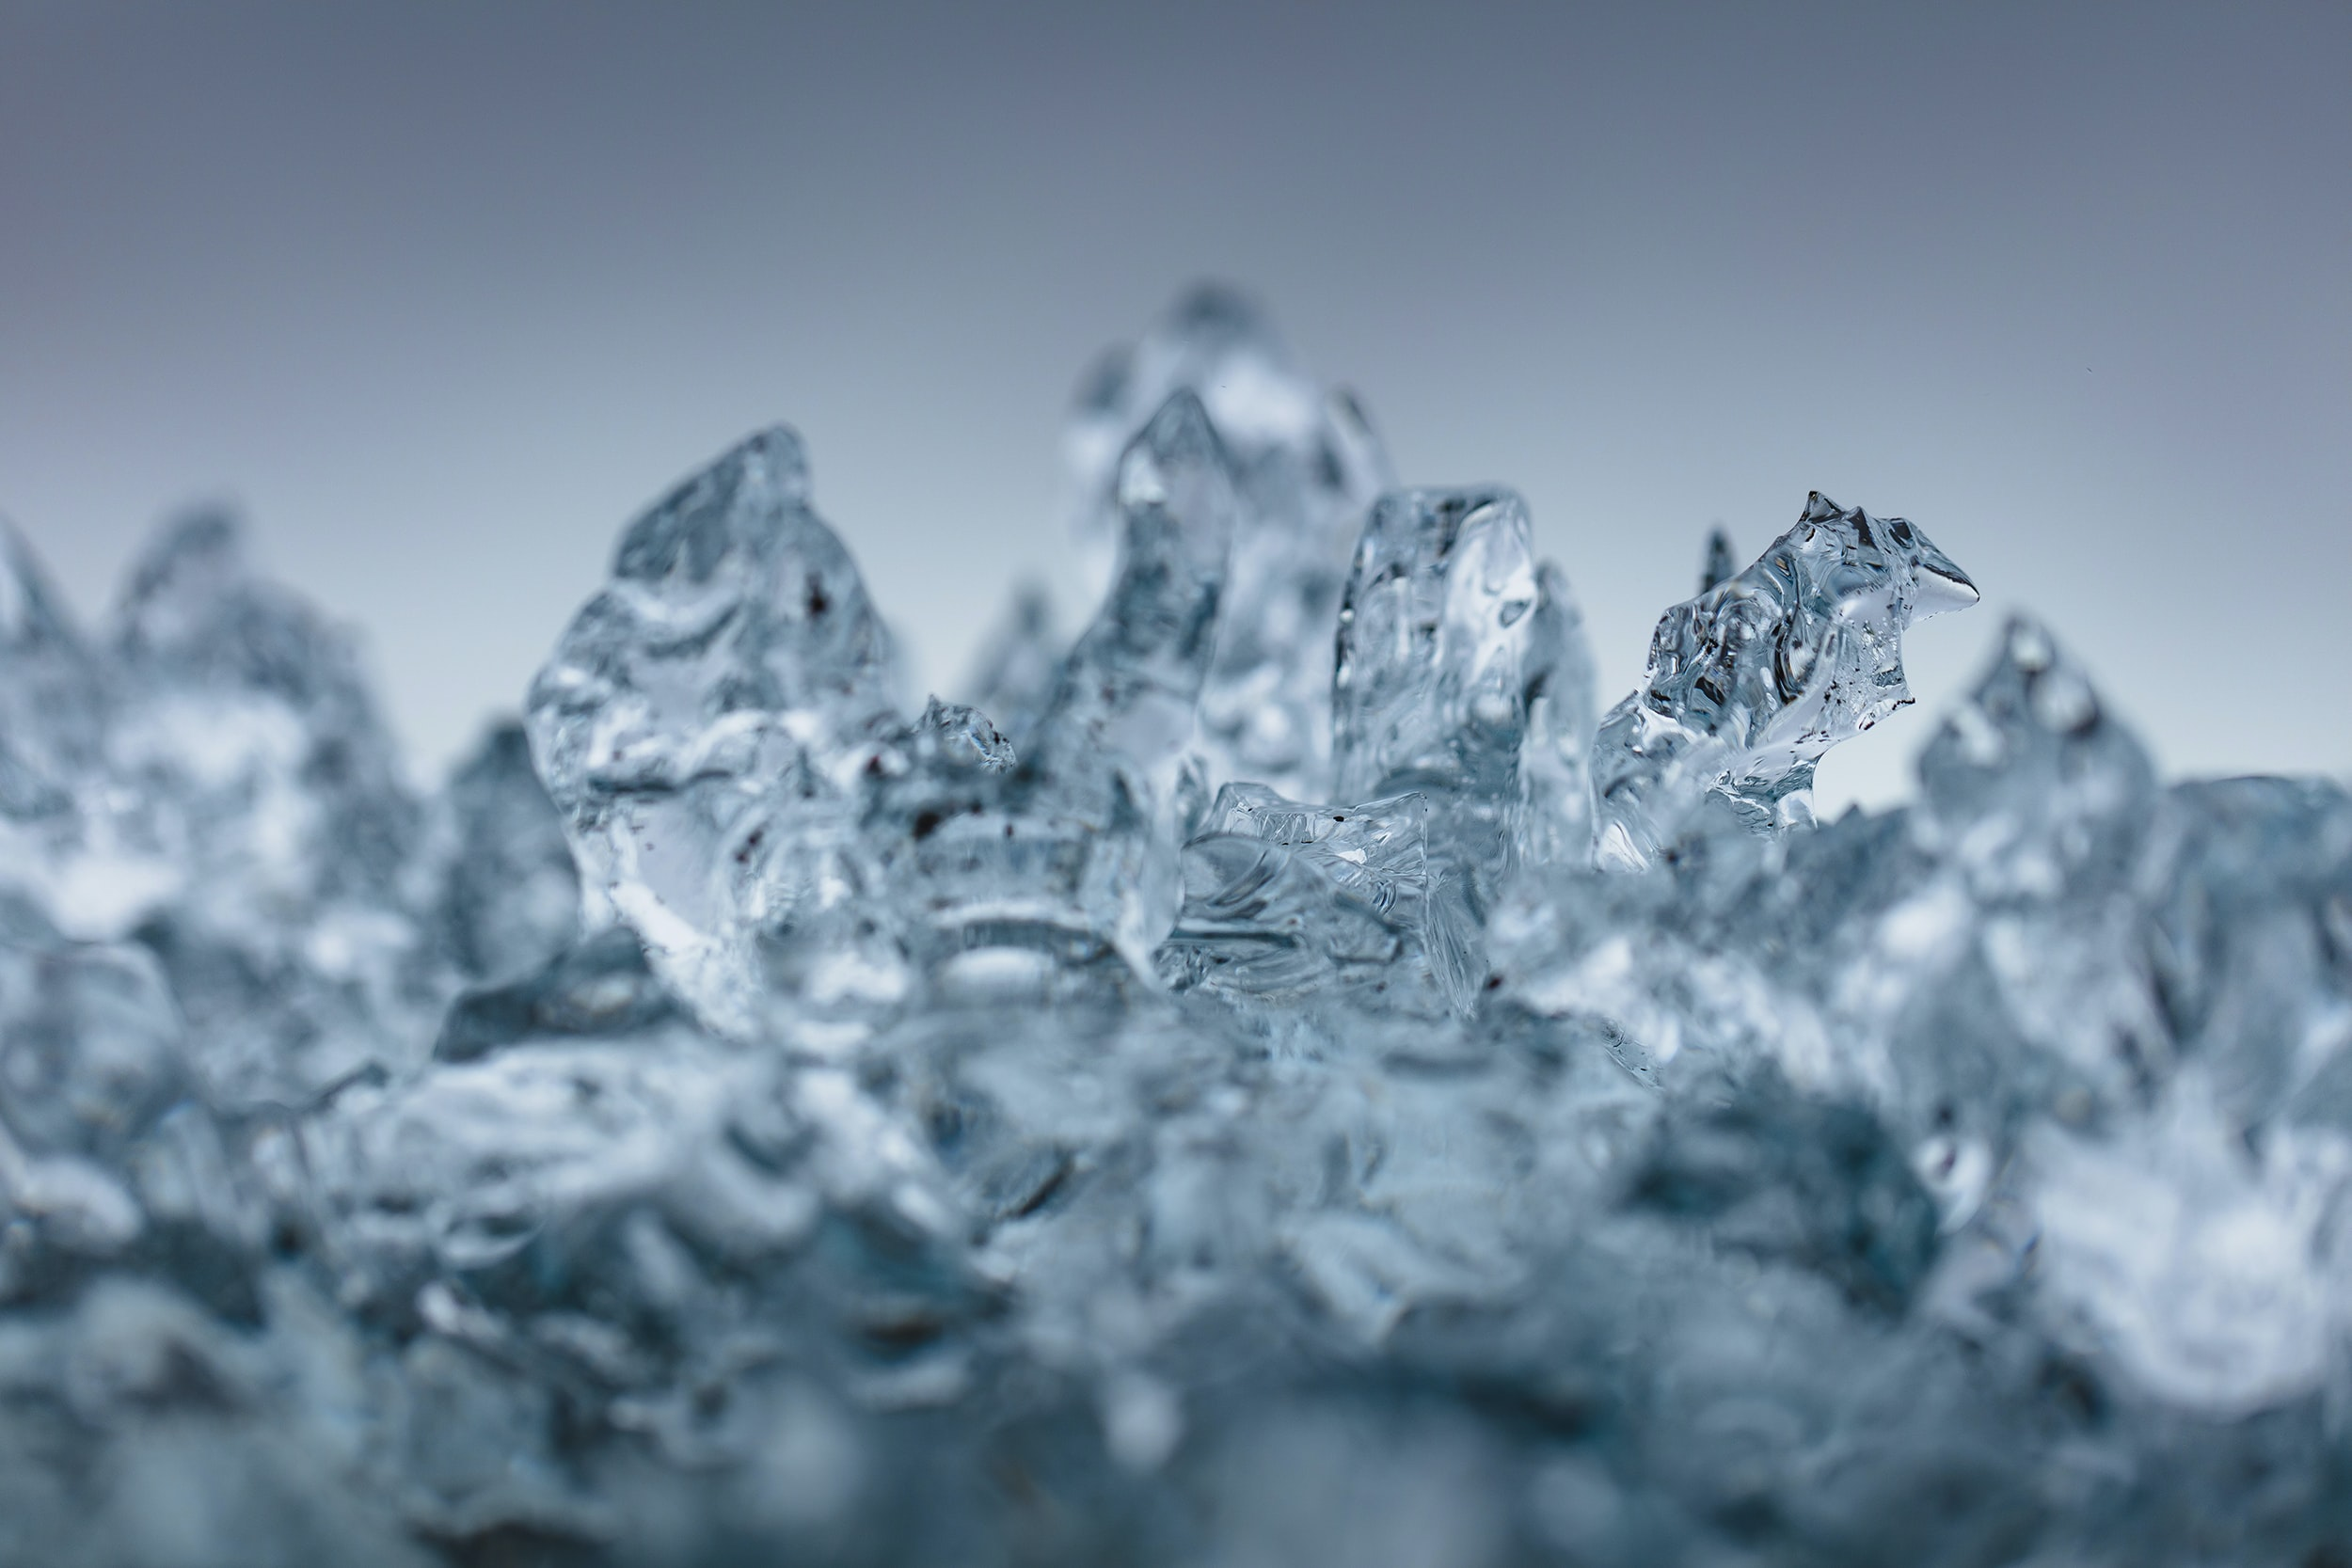 shallow focus photography of ice melting